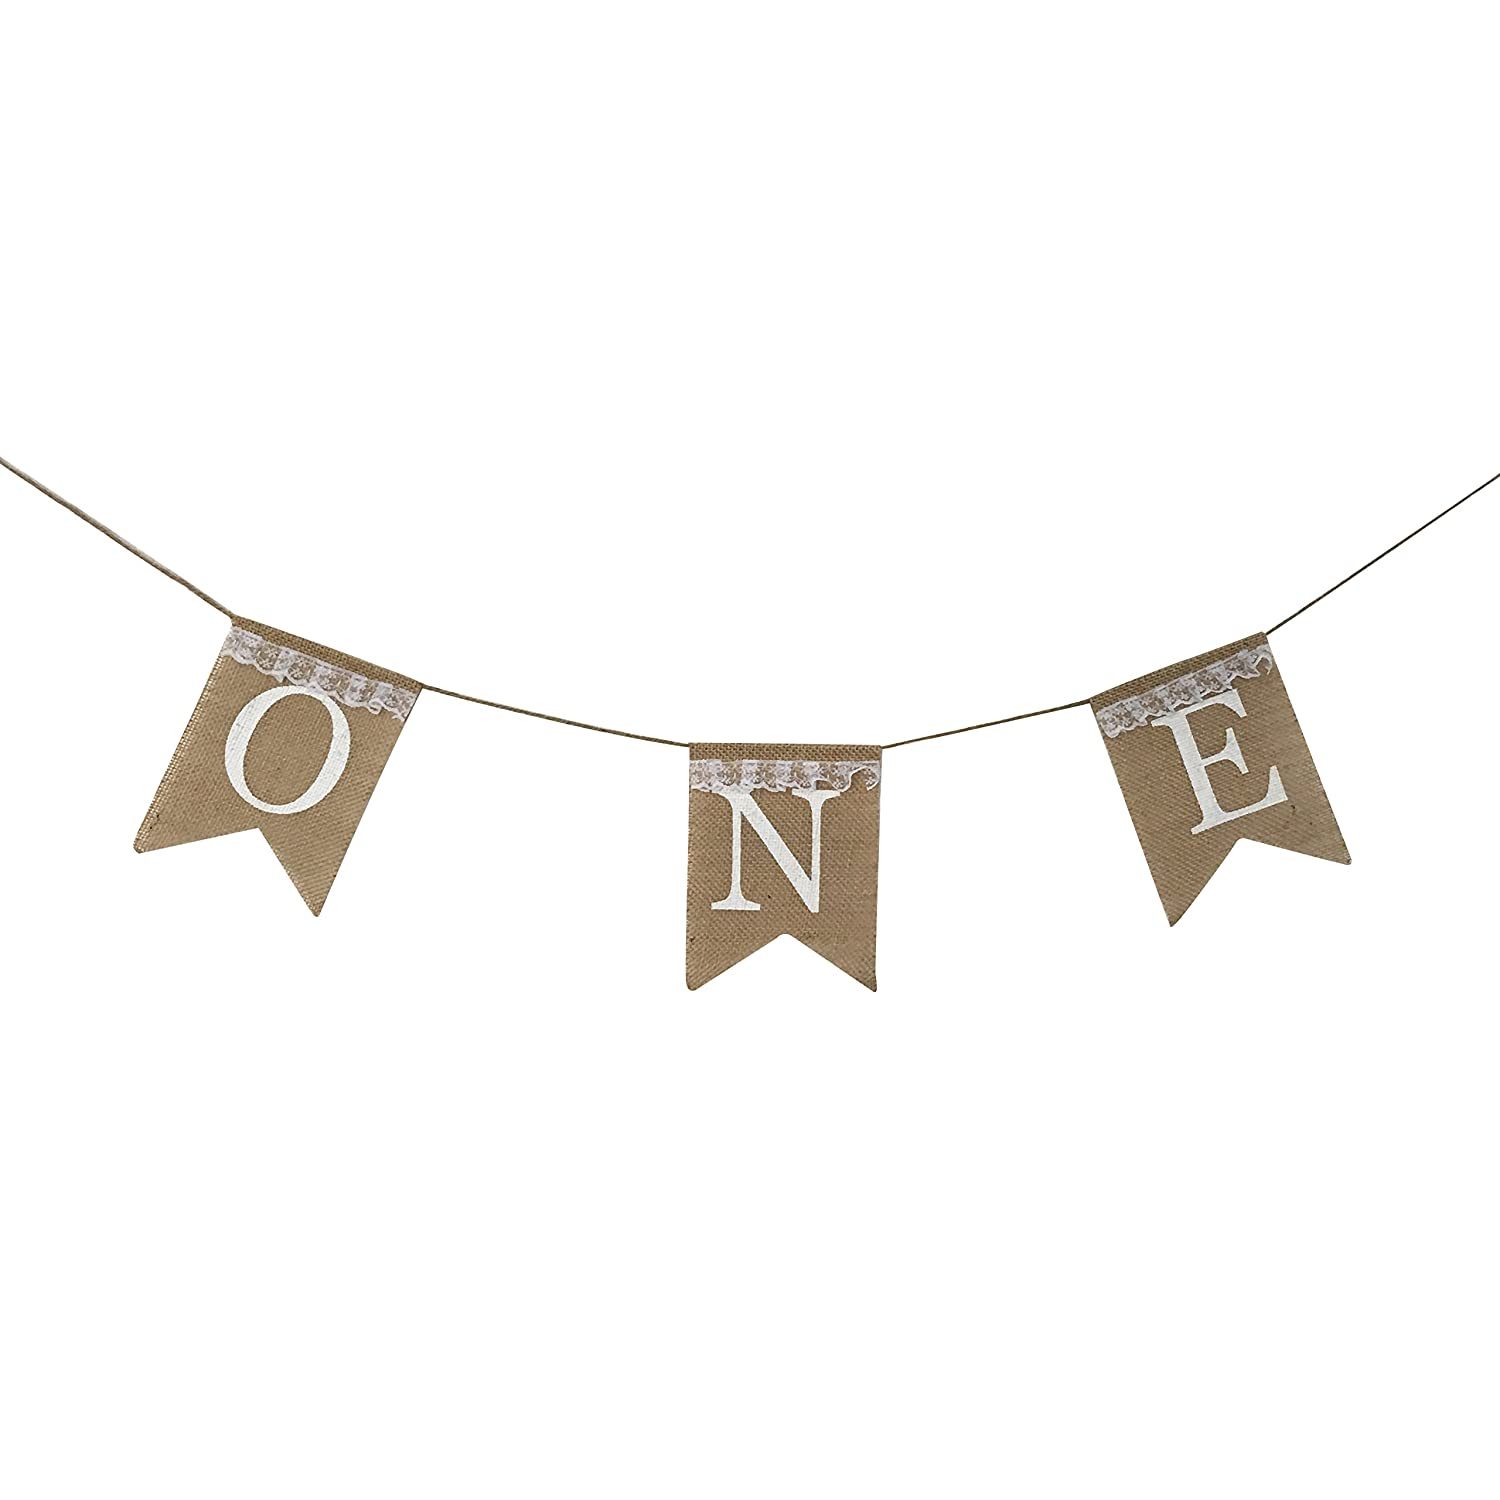 One Banner - First Birthday Party Decorations - 1st Birthday - I Am One - Burlap Lace Highchair Banner Garland for Boy, Girl,Twins   B01N0BIG8X